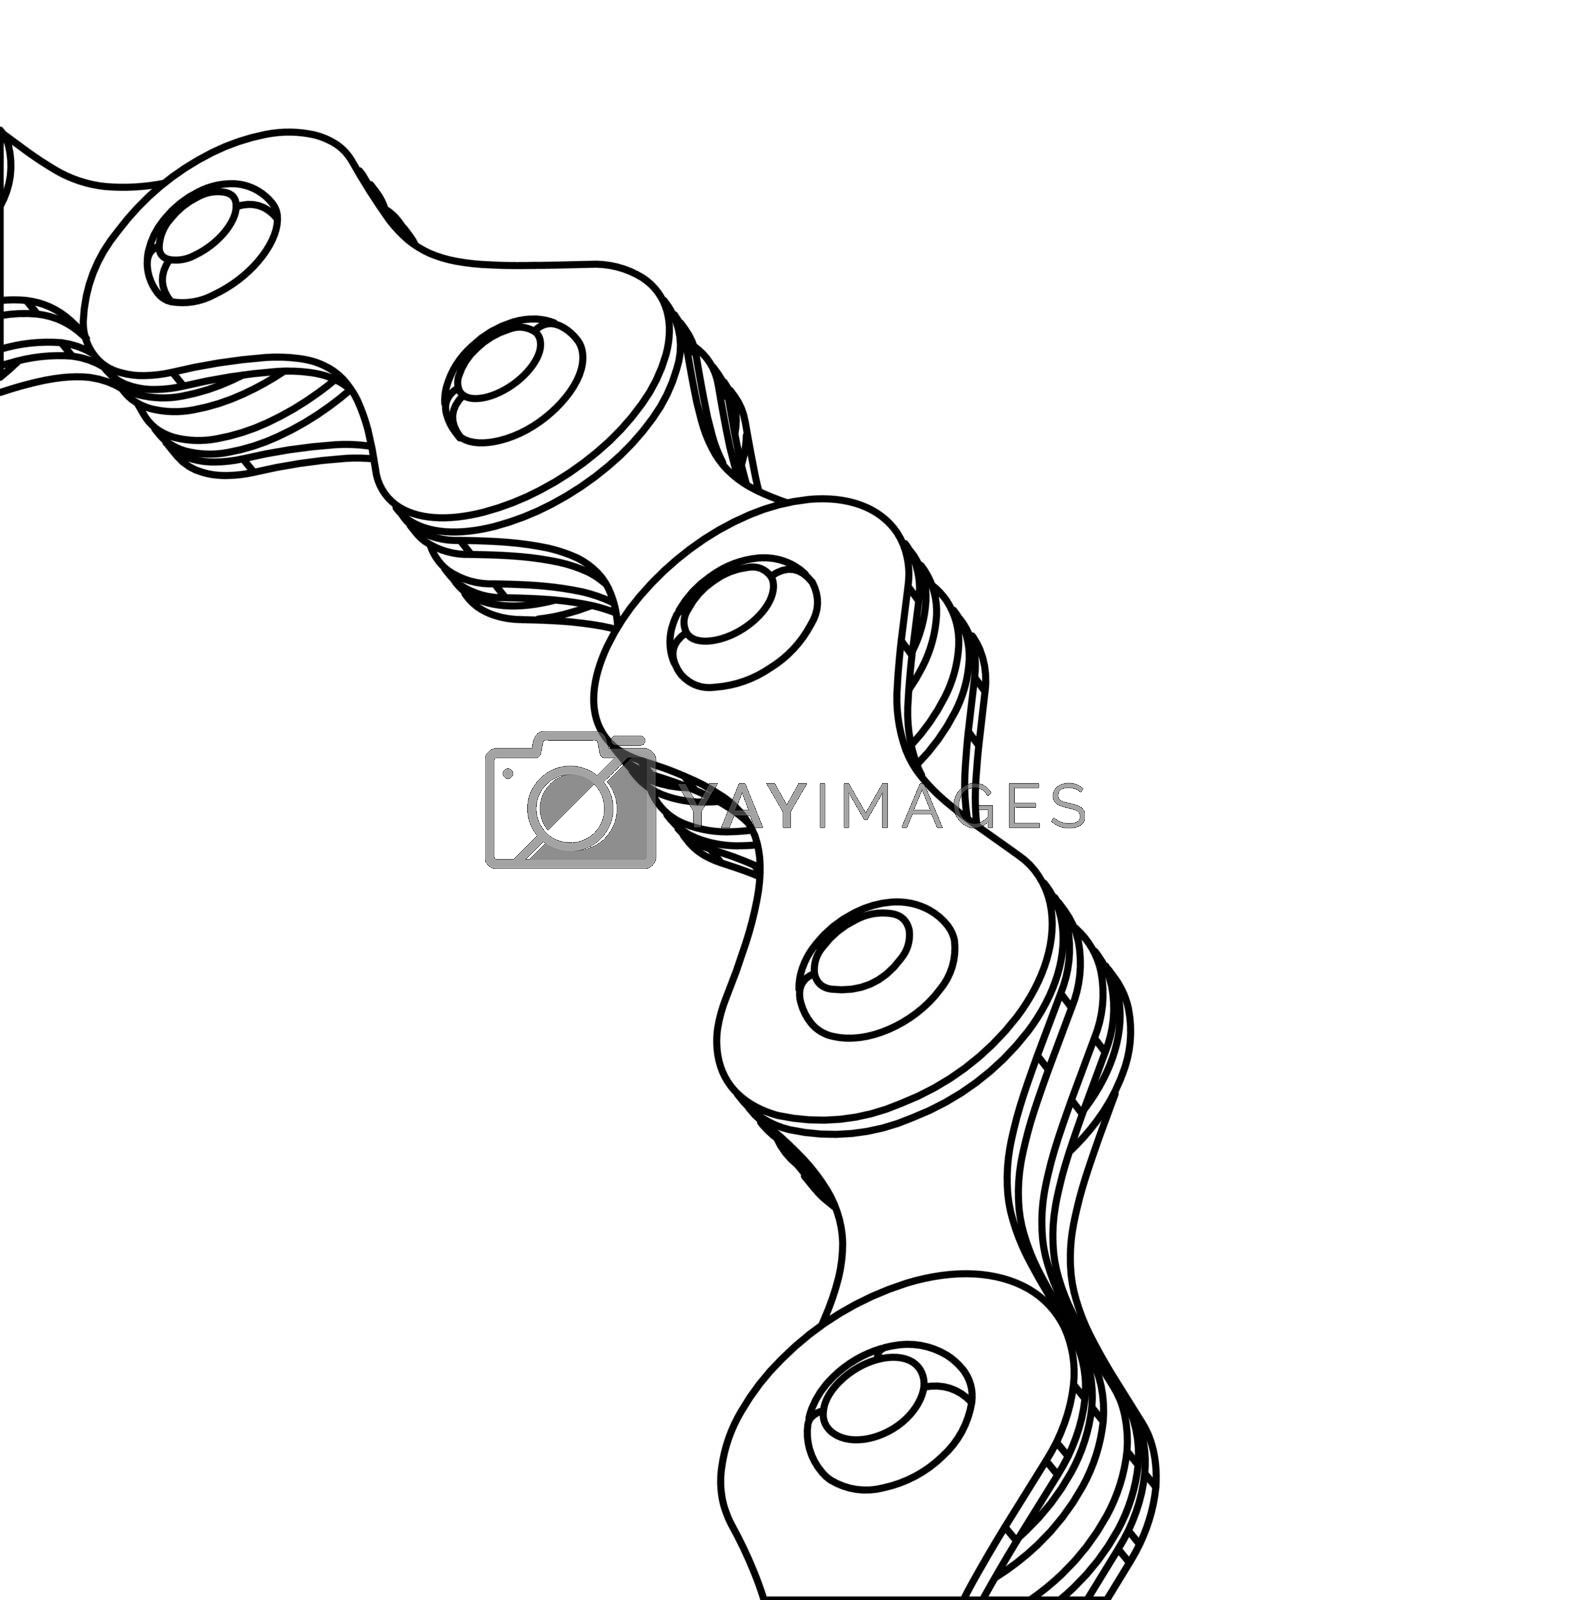 Bicycle chain close-up vector illustration. 3D design. Vector illustration on white backgound